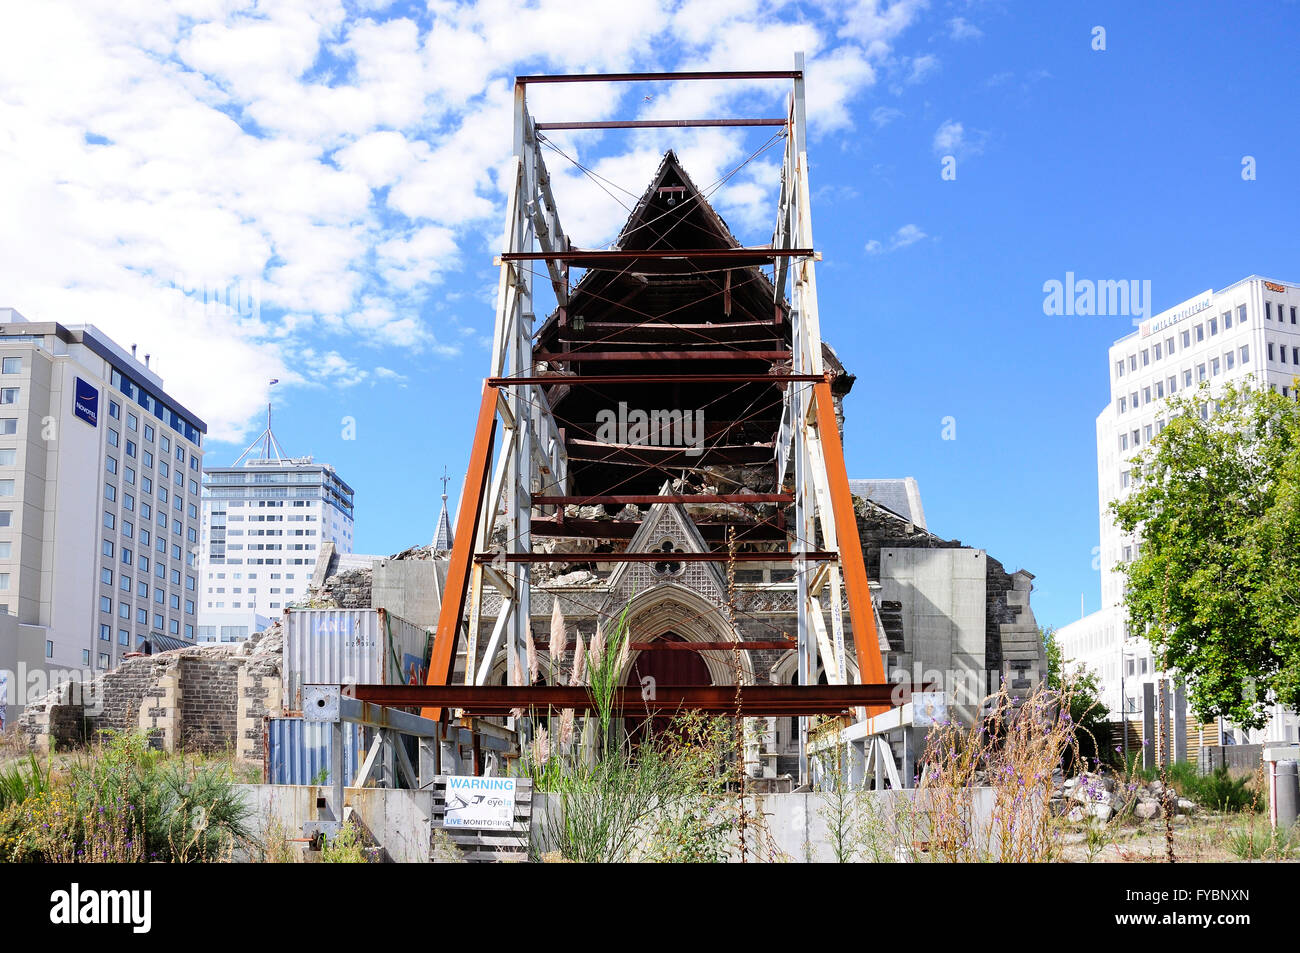 Ruinen Von Christchurch Cathedral Nach Erdbeben Cathedral Square Christchurch Region Canterbury Sudinsel Neuseeland Stockfotografie Alamy